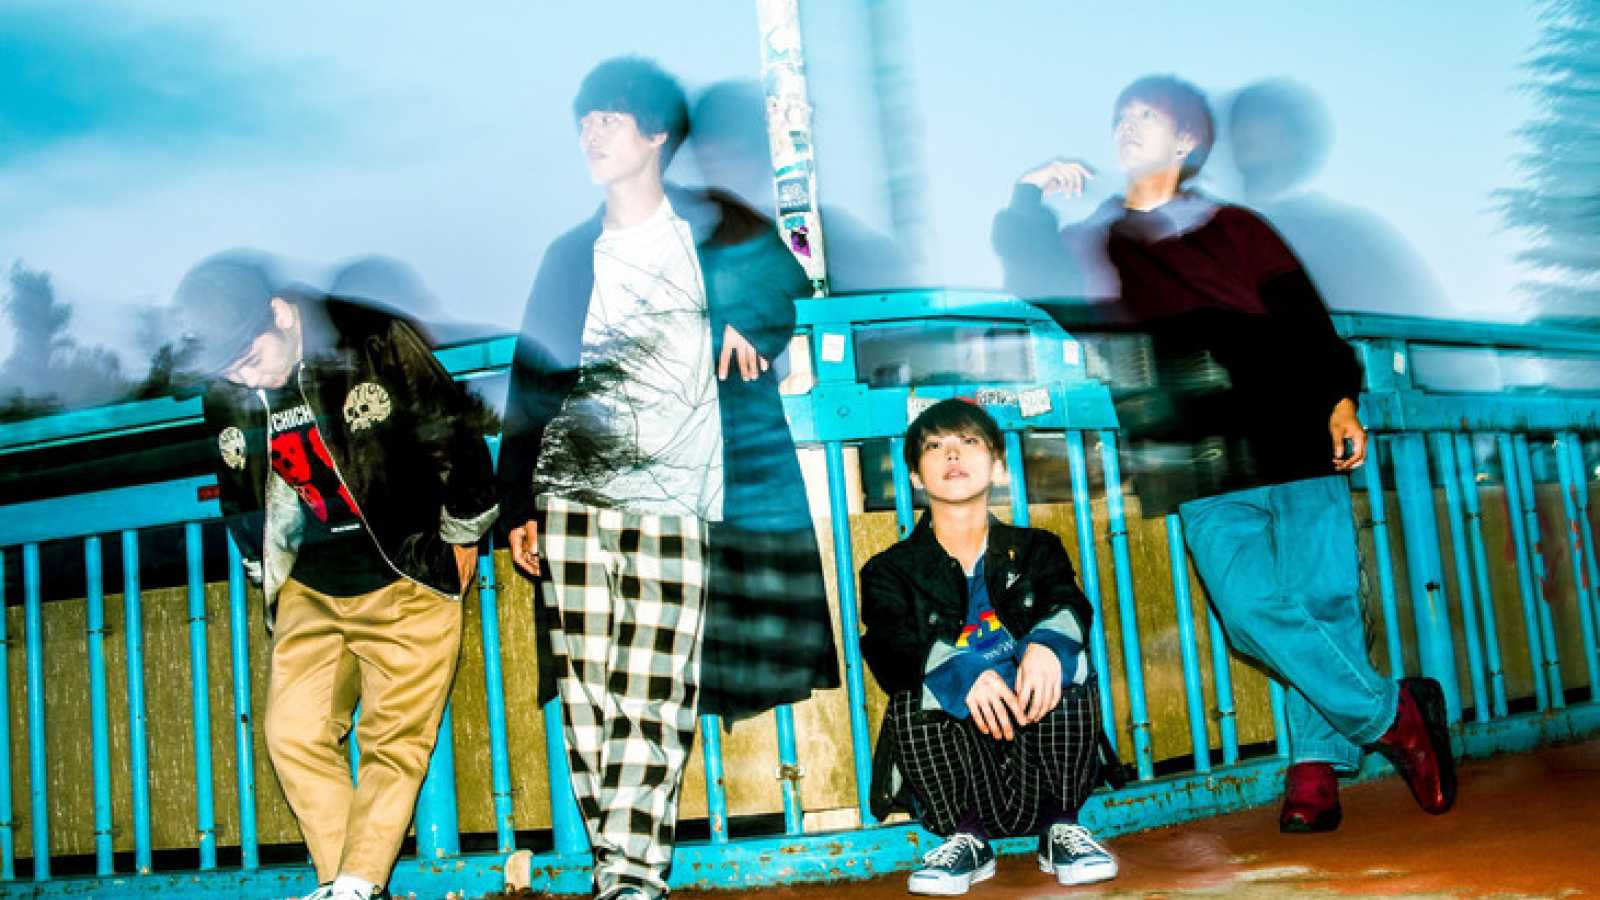 Nouveau single de 04 Limited Sazabys © 04 Limited Sazabys. All rights reserved.